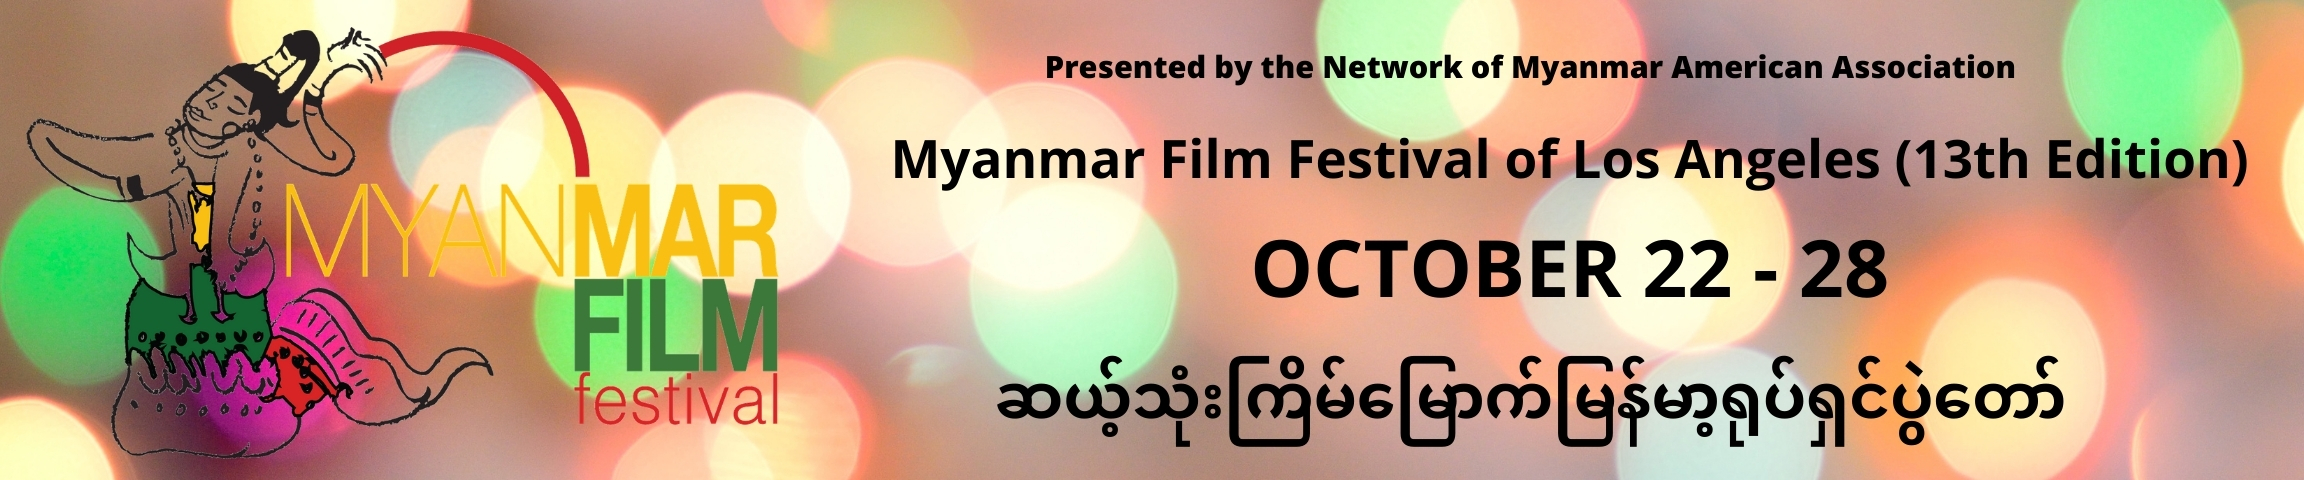 Myanmar Film Festival of Los Angeles (13th Edition)